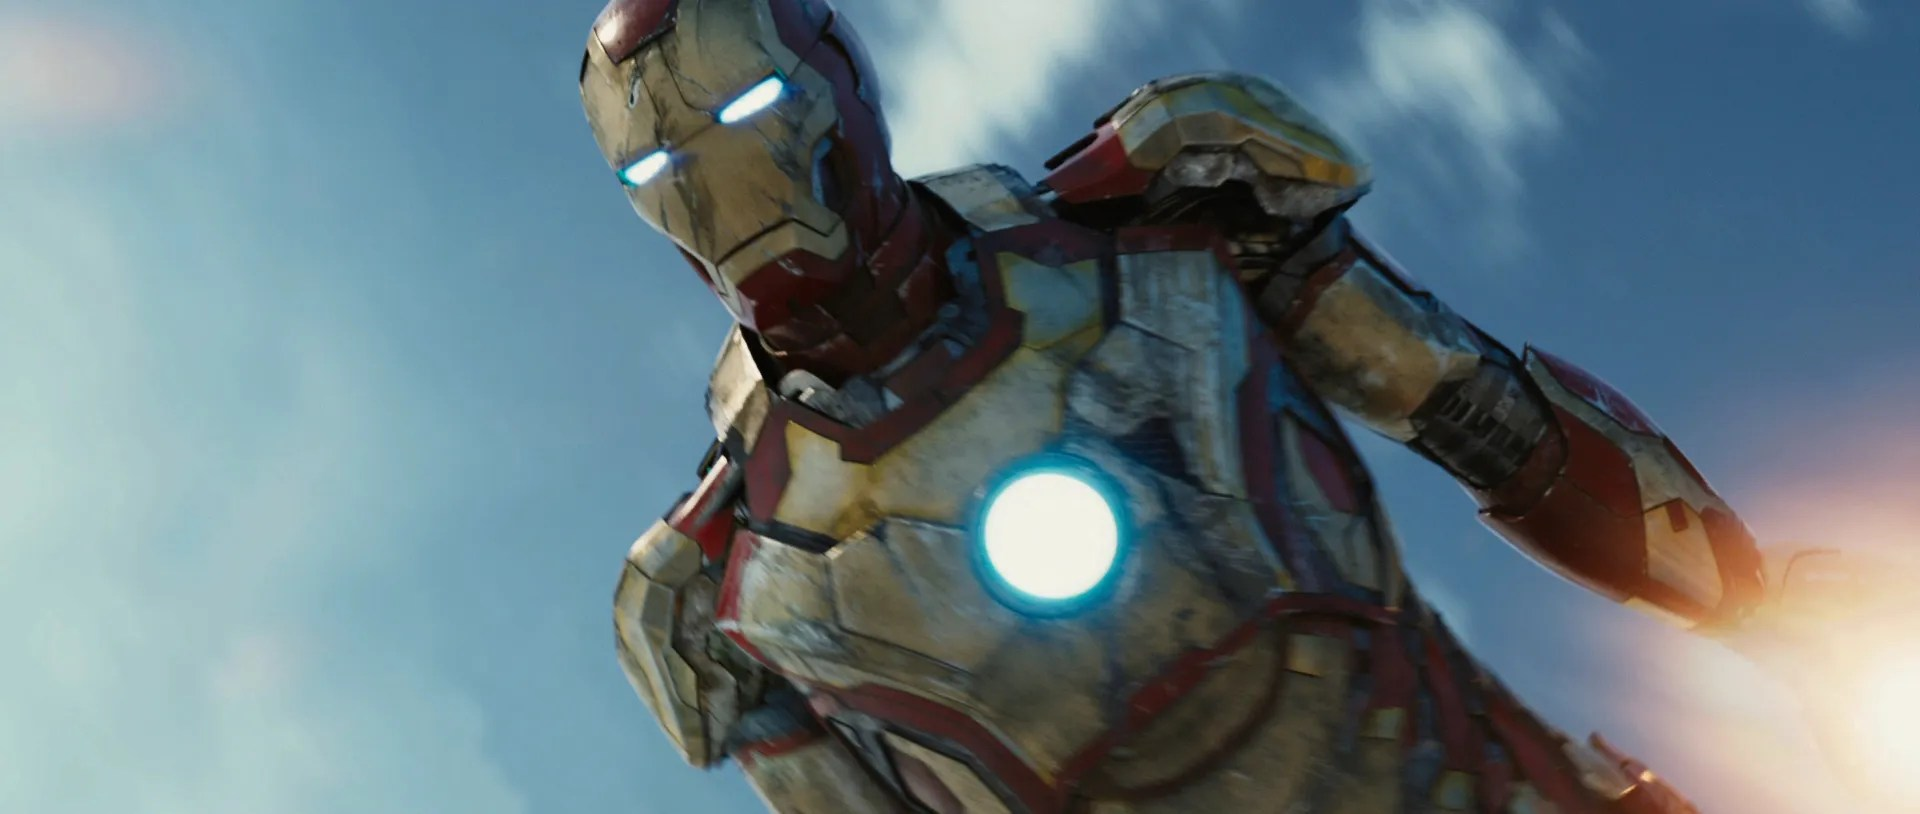 IRON MAN 3 Super Bowl Commercial Images | Collider